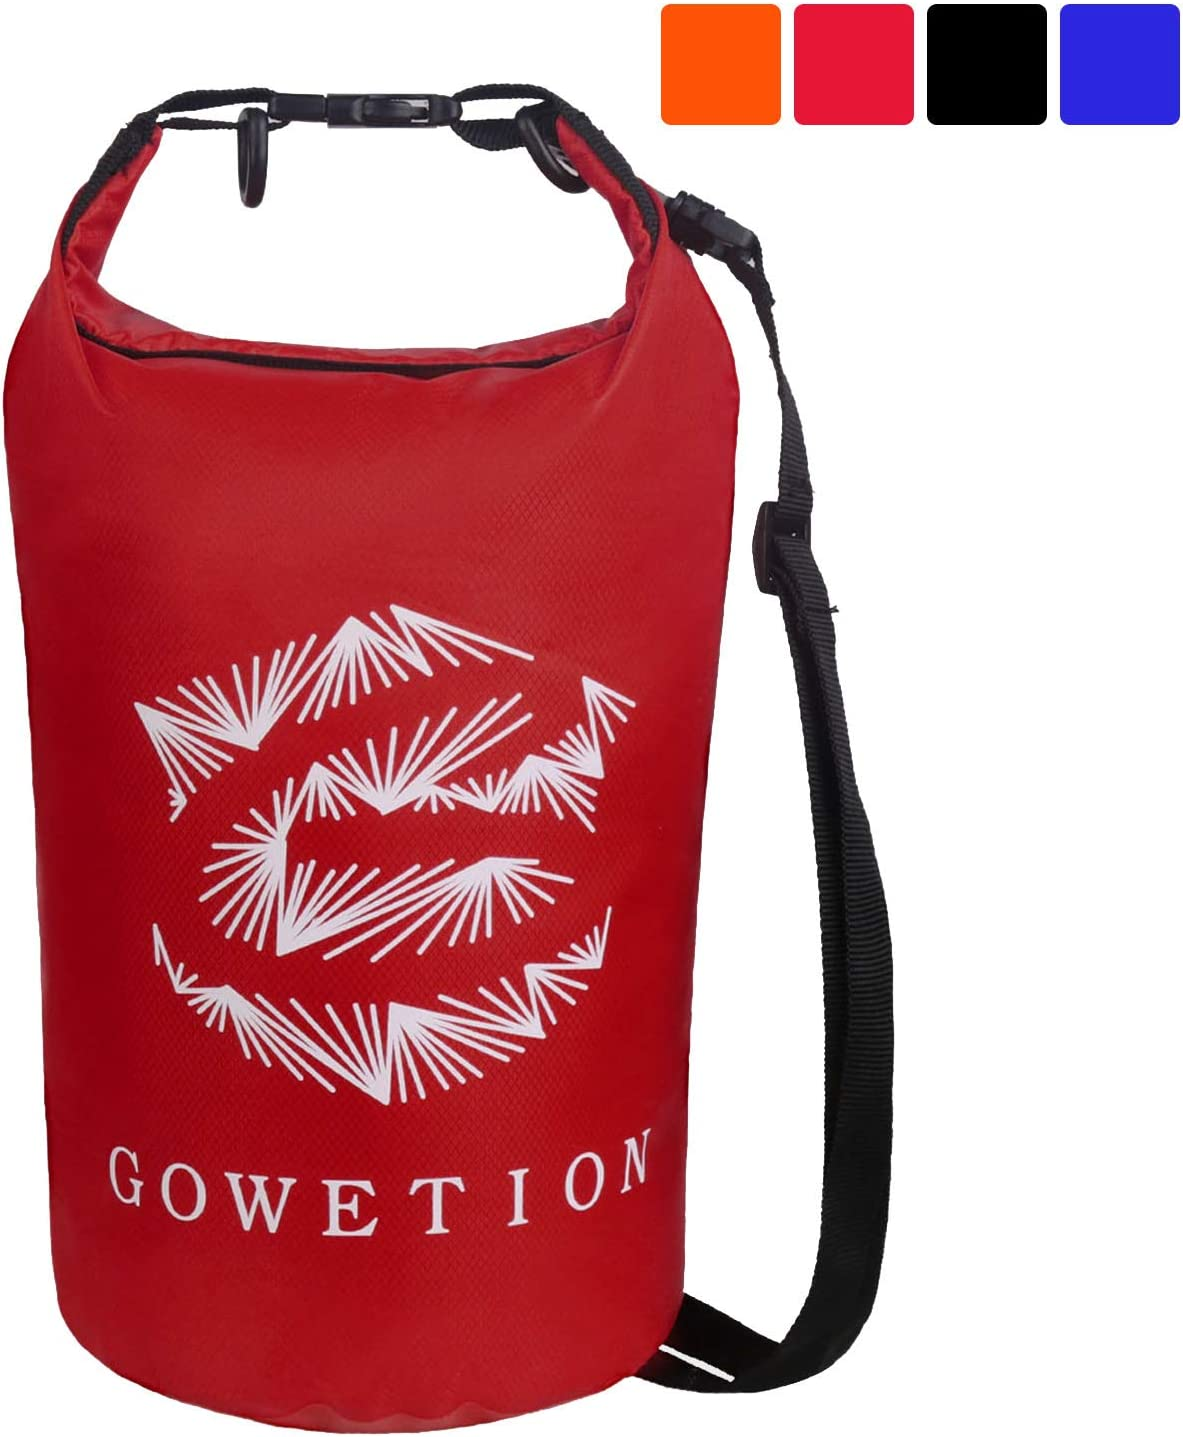 Boating Hiking GOWETION Floating Waterproof Dry Storage Bag Floating with 4.5L//10L Adjustable Shoulder Strap Roll Top Keeps Dry for Kayaking Rafting Beach Fishing Camping Swimming